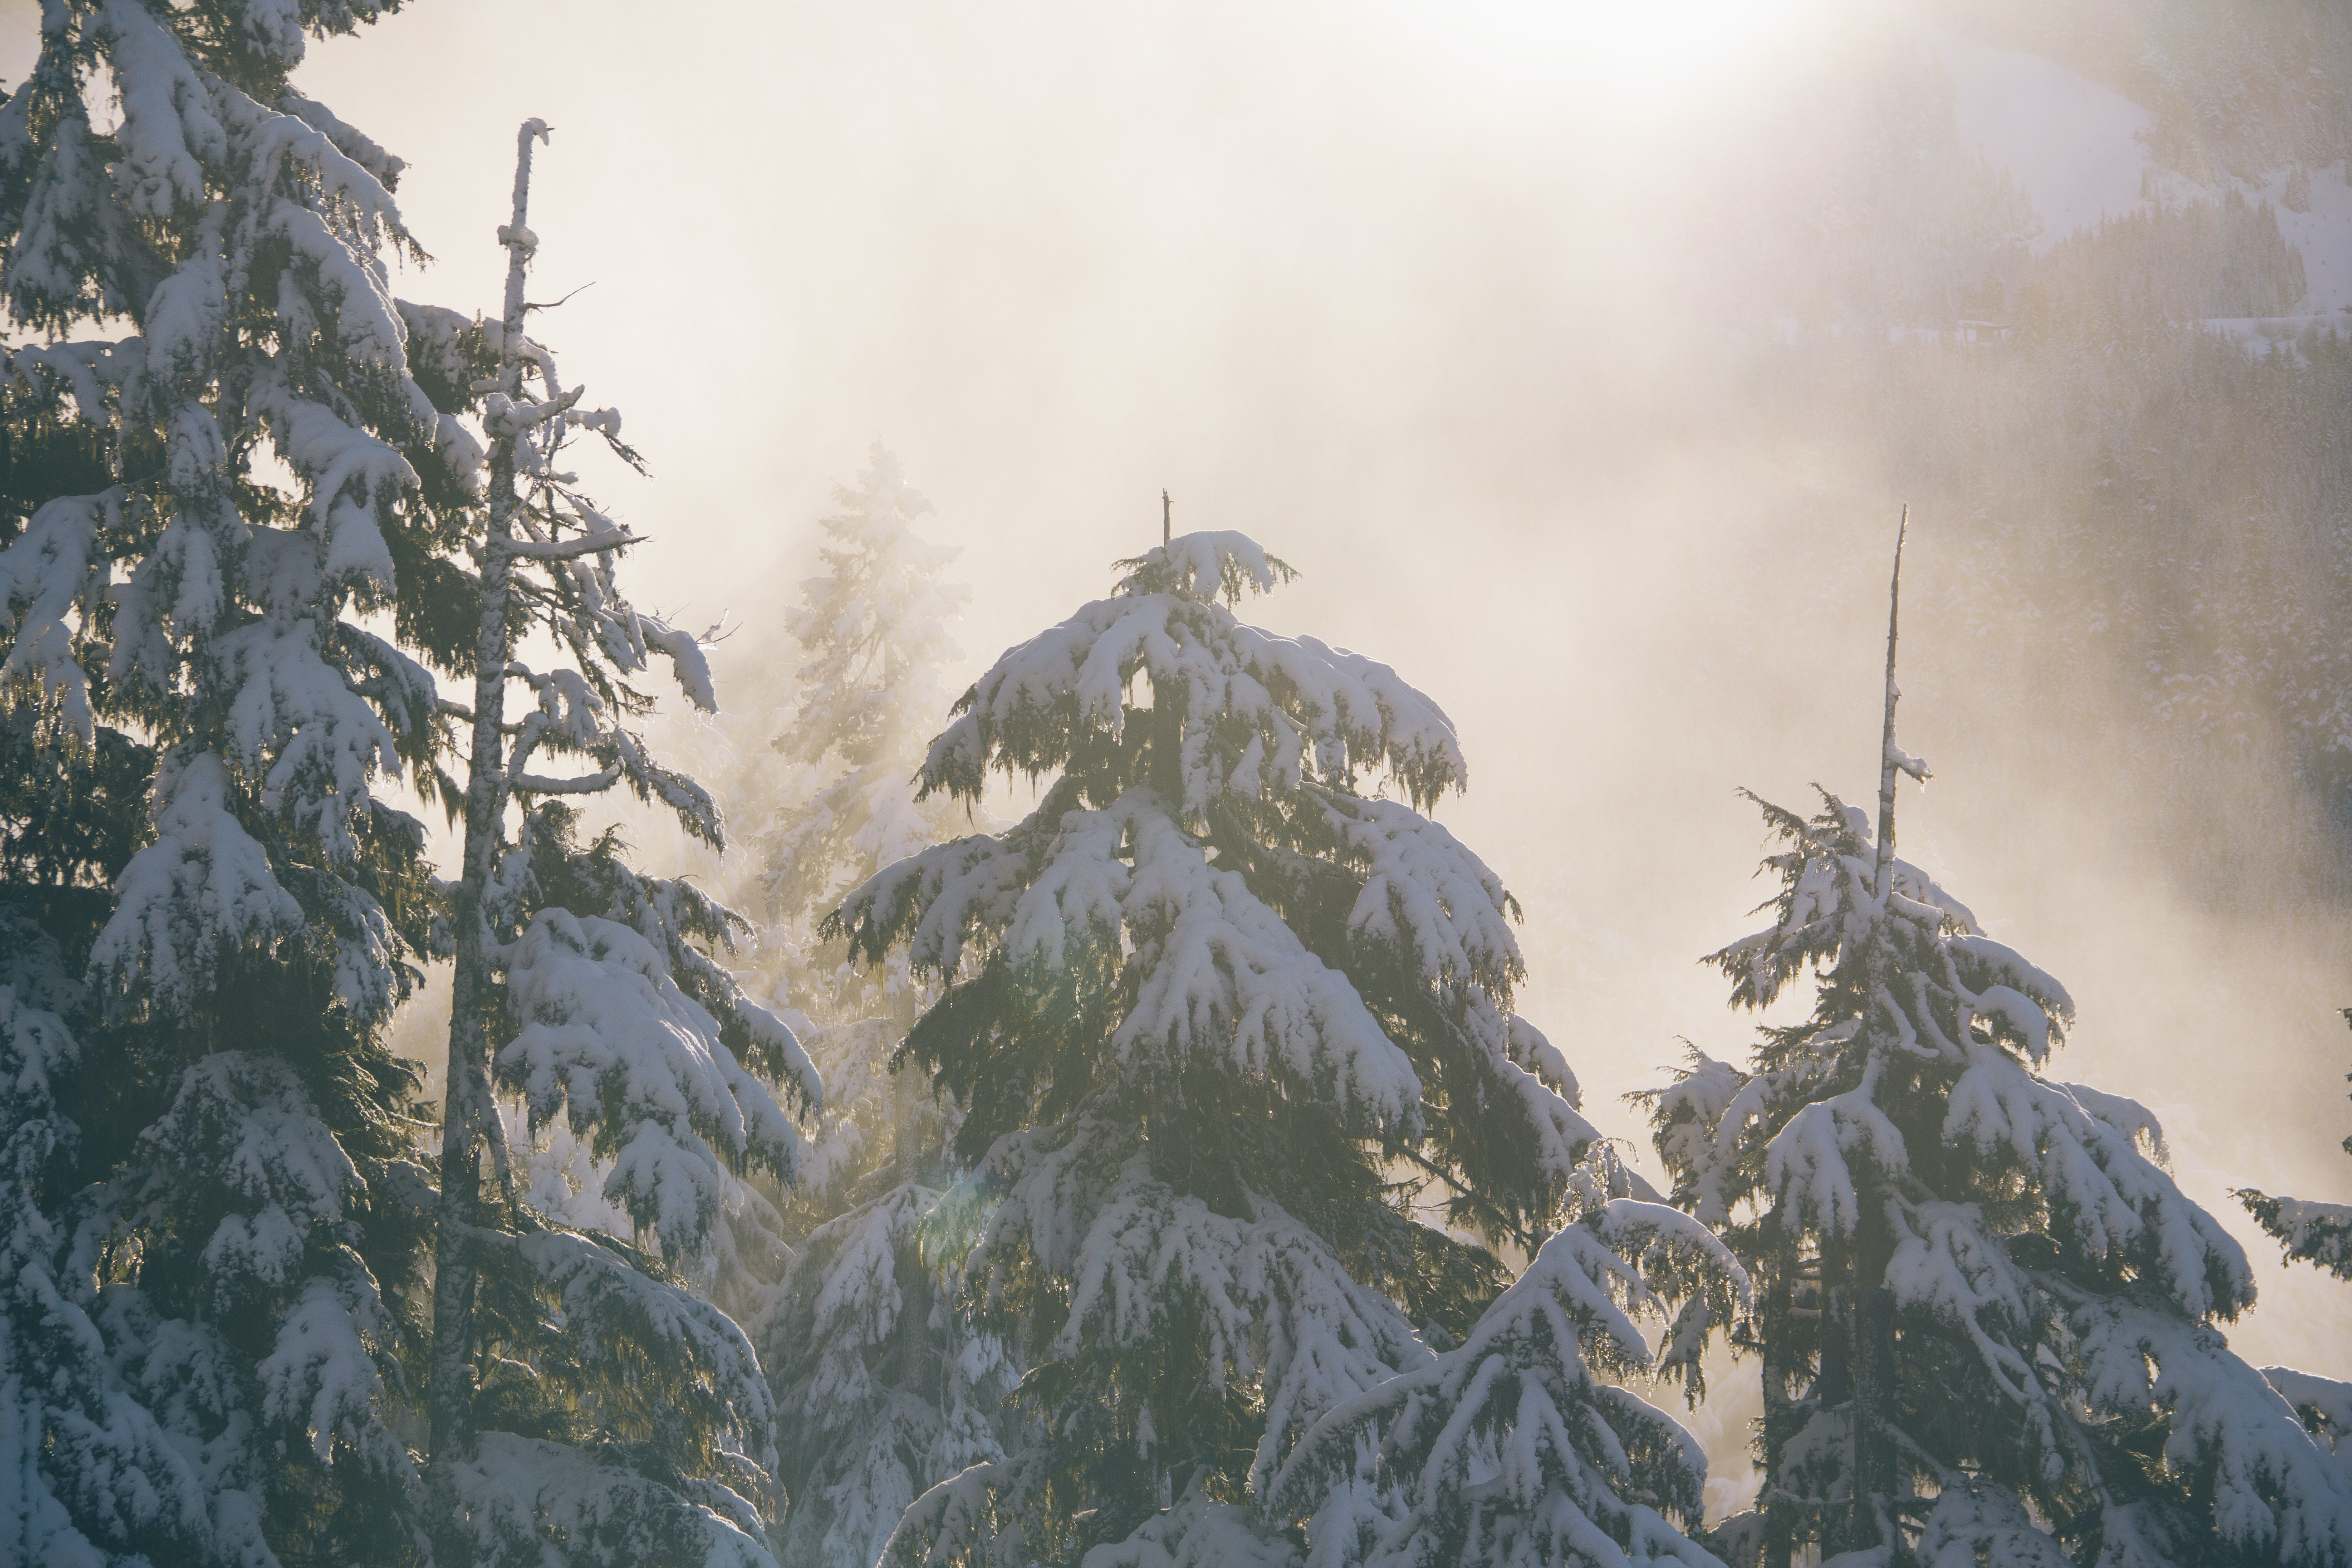 Pine trees covered with snow in a foggy forest